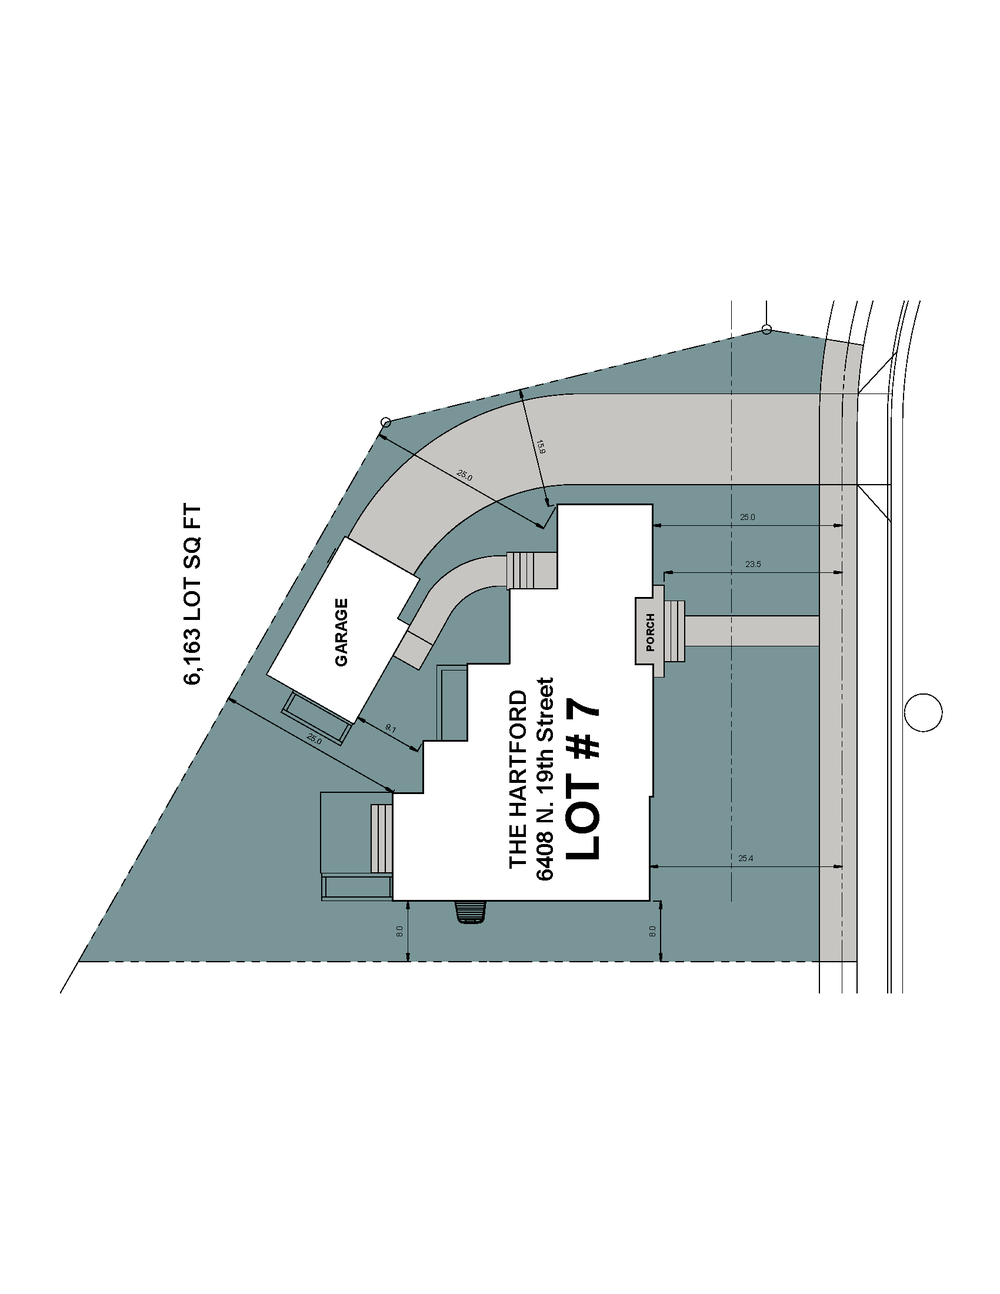 Lot 7 Site Plan-6408 N 19th Street-The Hartford Model.png